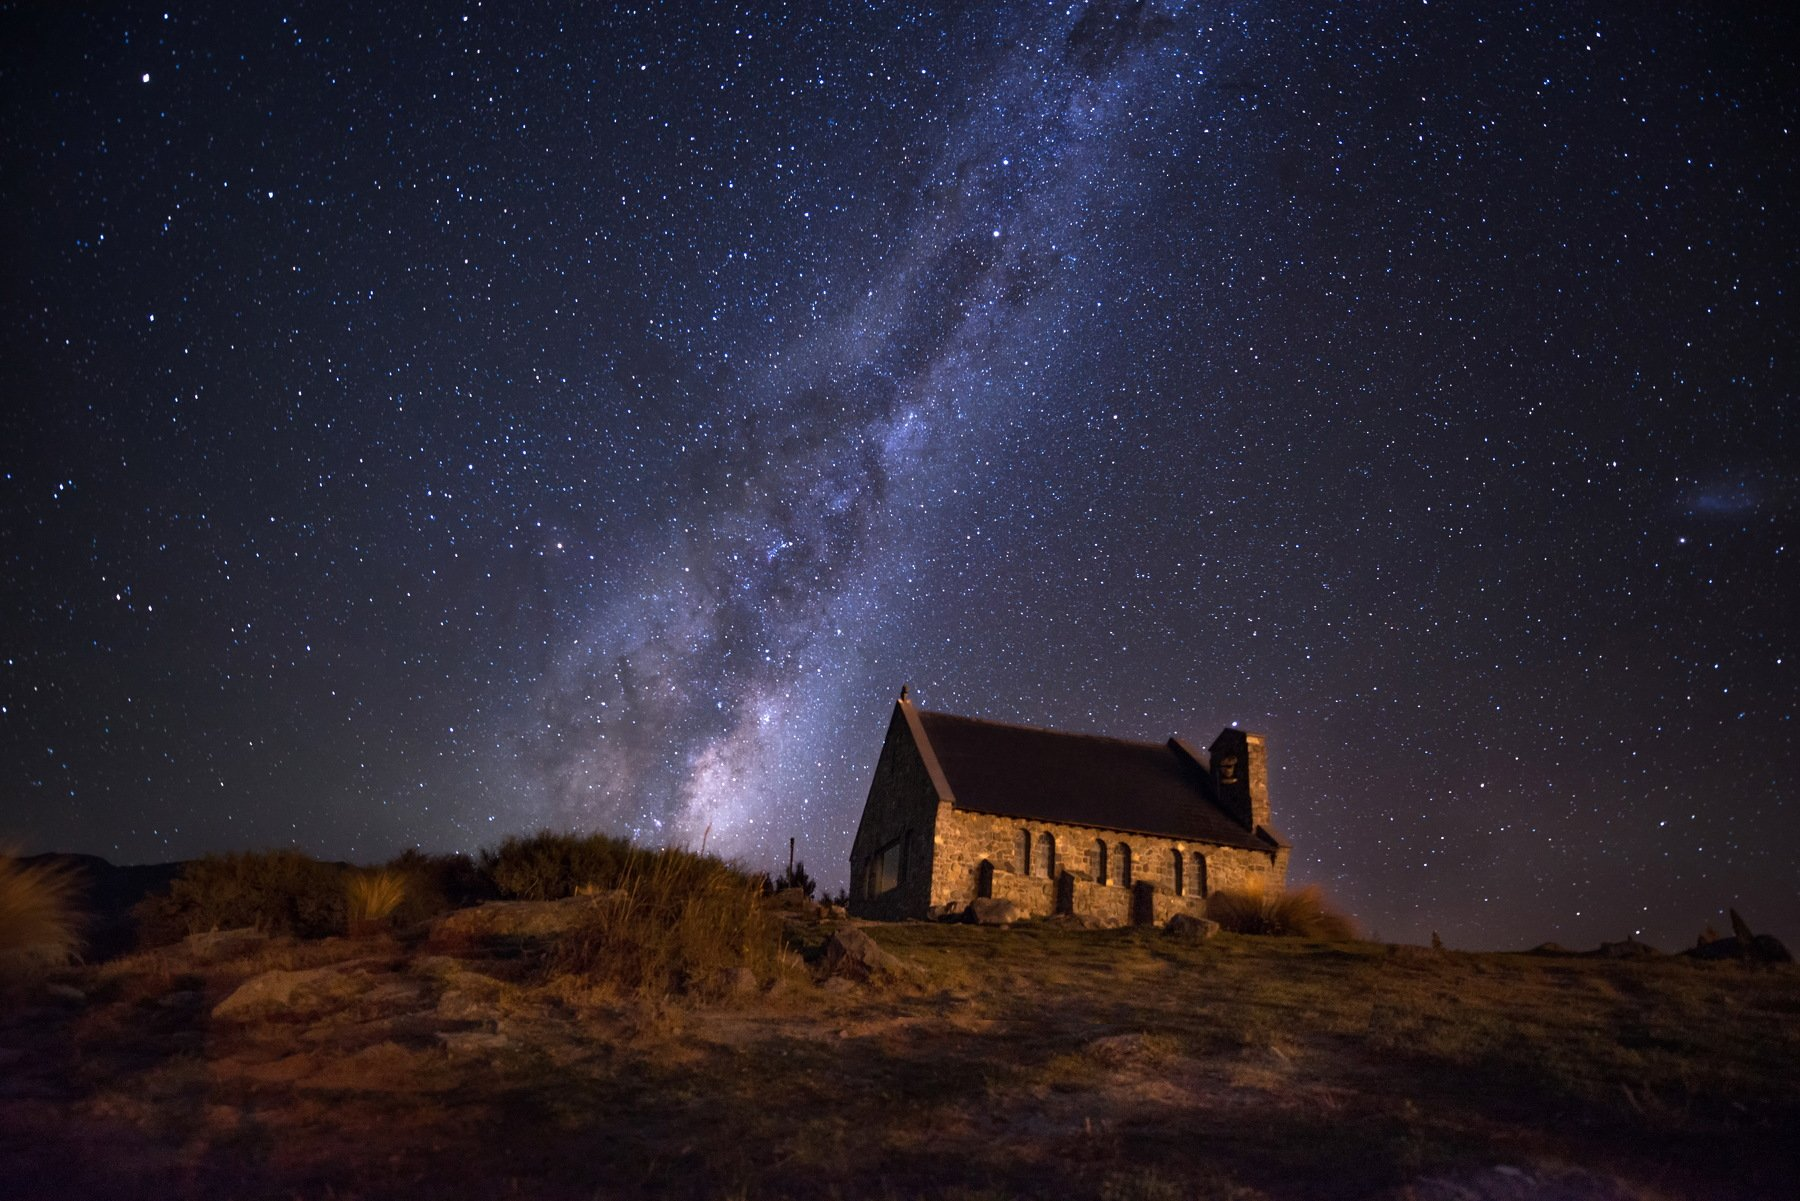 Lake Tekapo, New Zealand, Horizontal, Landscape, Night, Church, Beauty In Nature, Built Structure, Celebrities, Christianity, Church Of The Good Shepherd, Color Image, Grass, Milky Way, Nature, No People, Outdoors, Photography, Sky, Tekapo, Tranquility, T, sarawut intarob